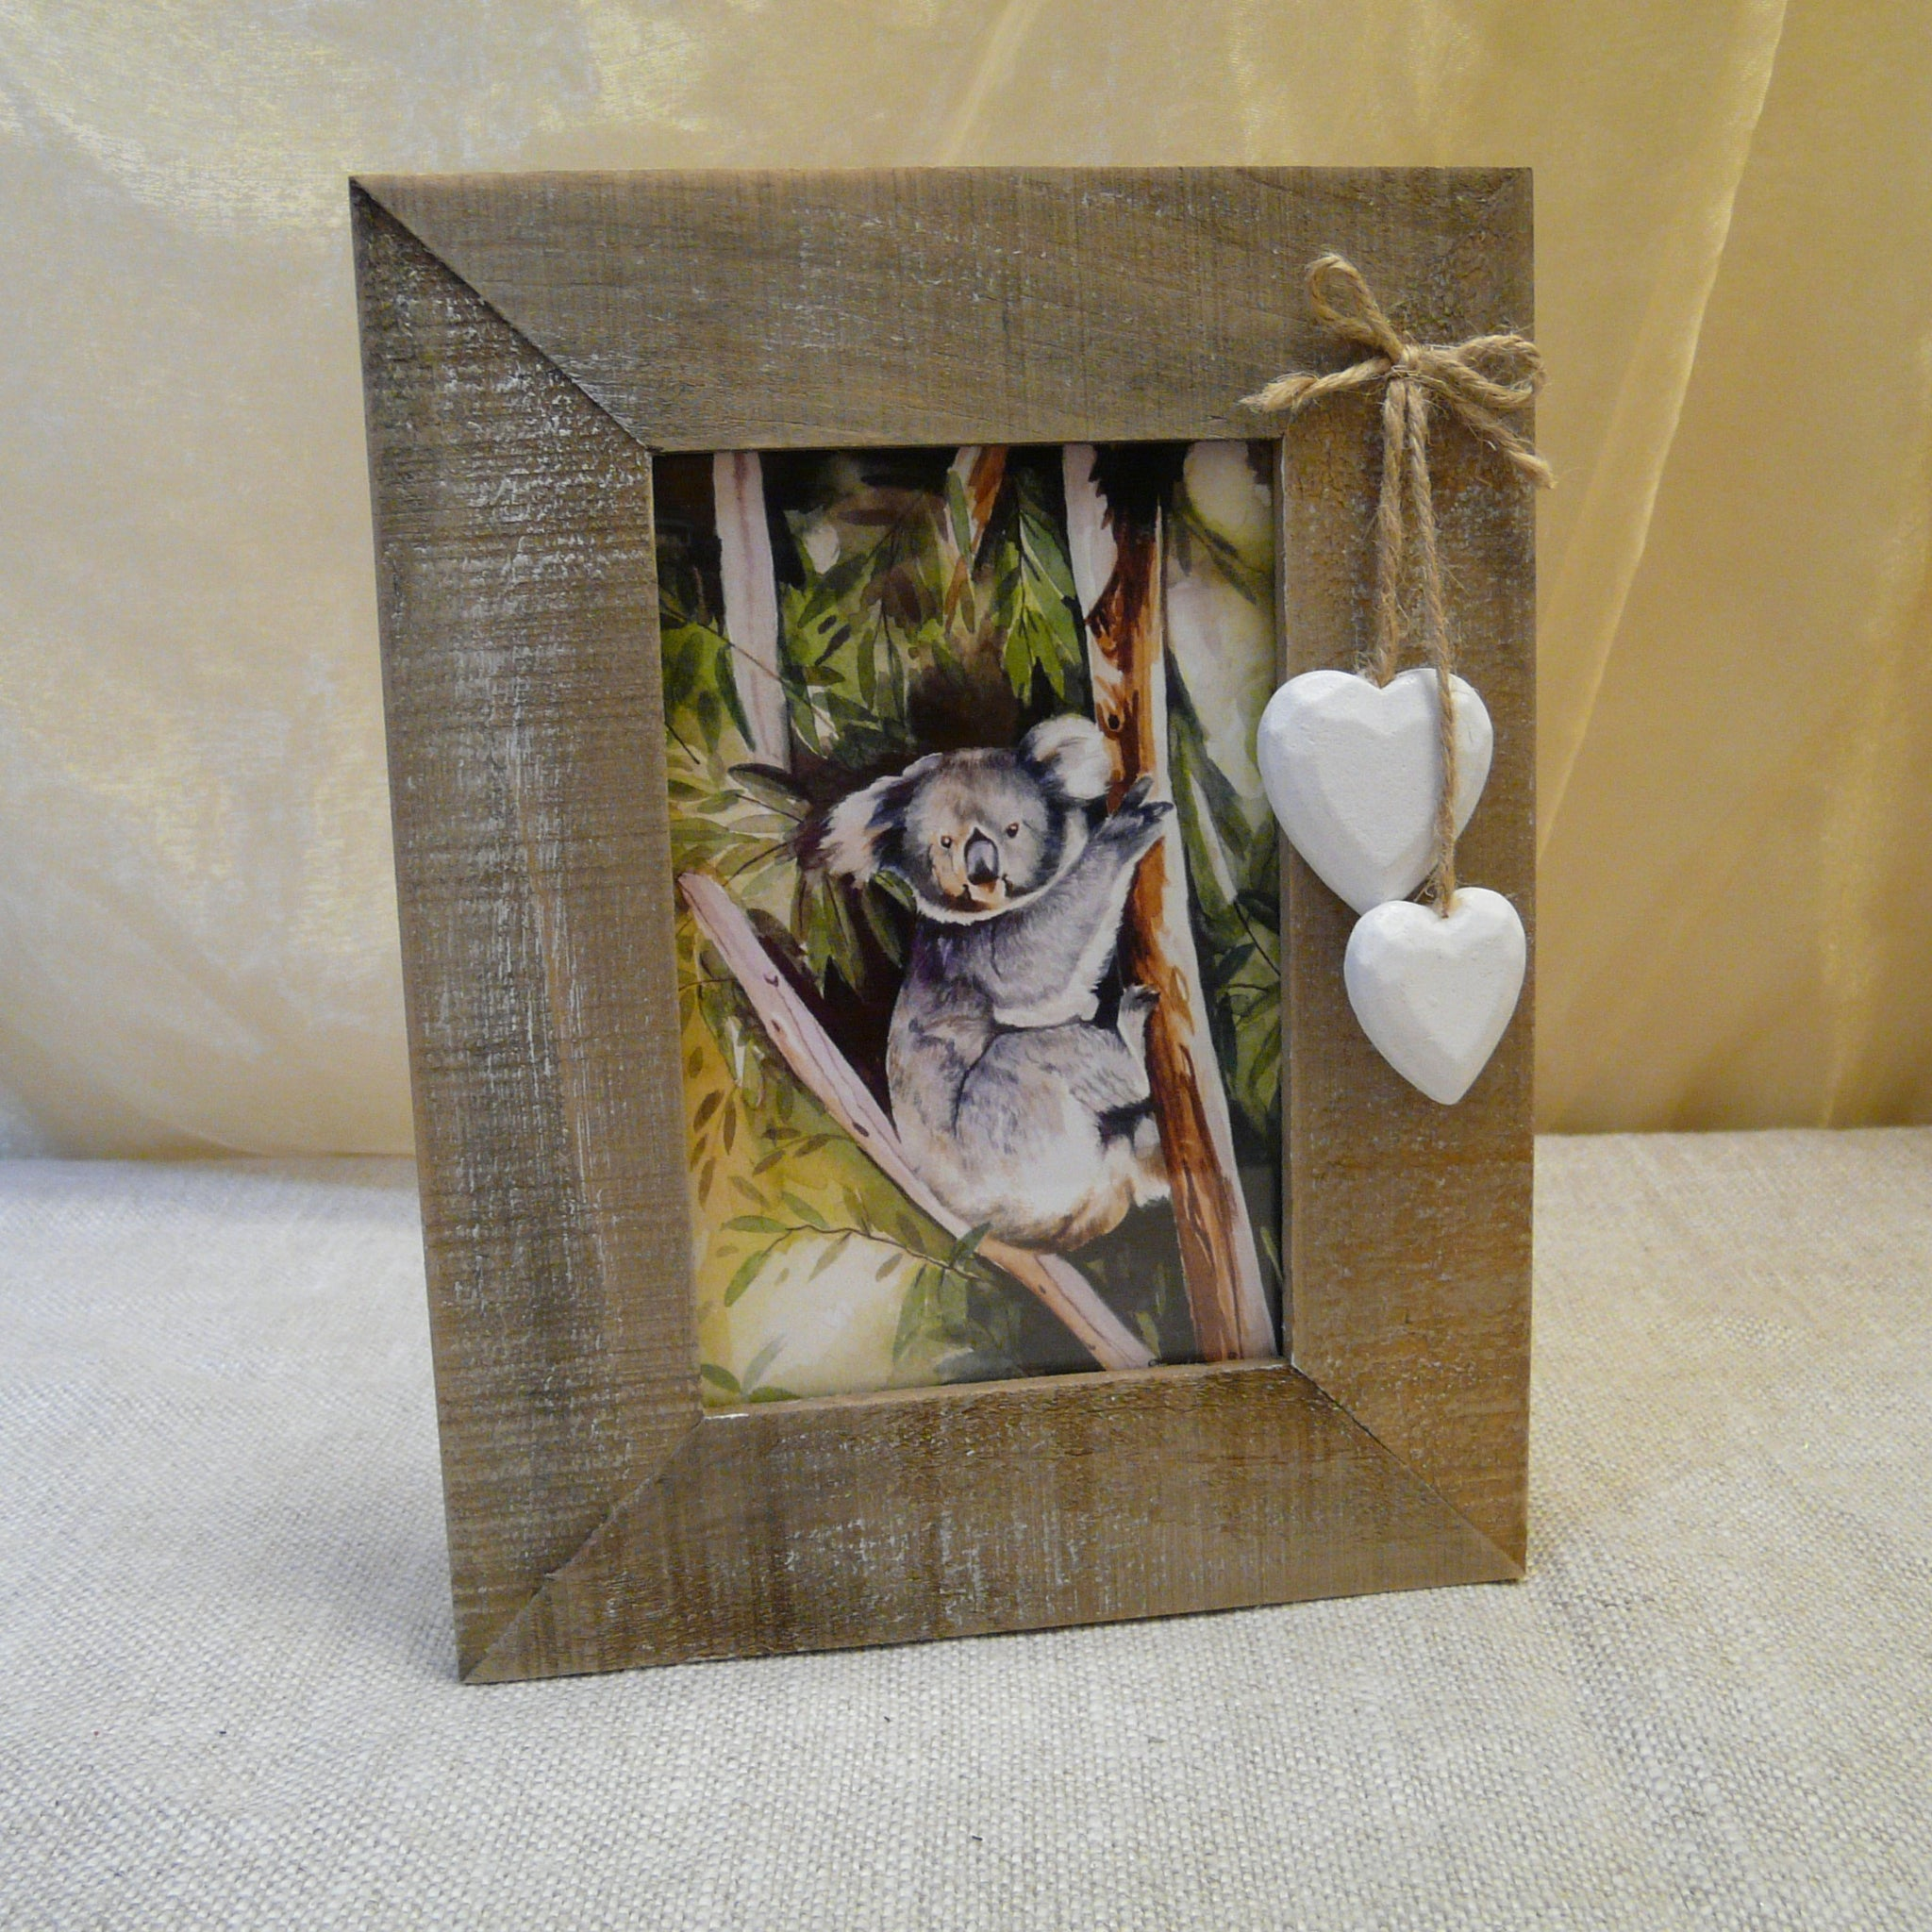 P1090399-Eco-friendly-drift-wood-Picture-frame-with-white-hearts